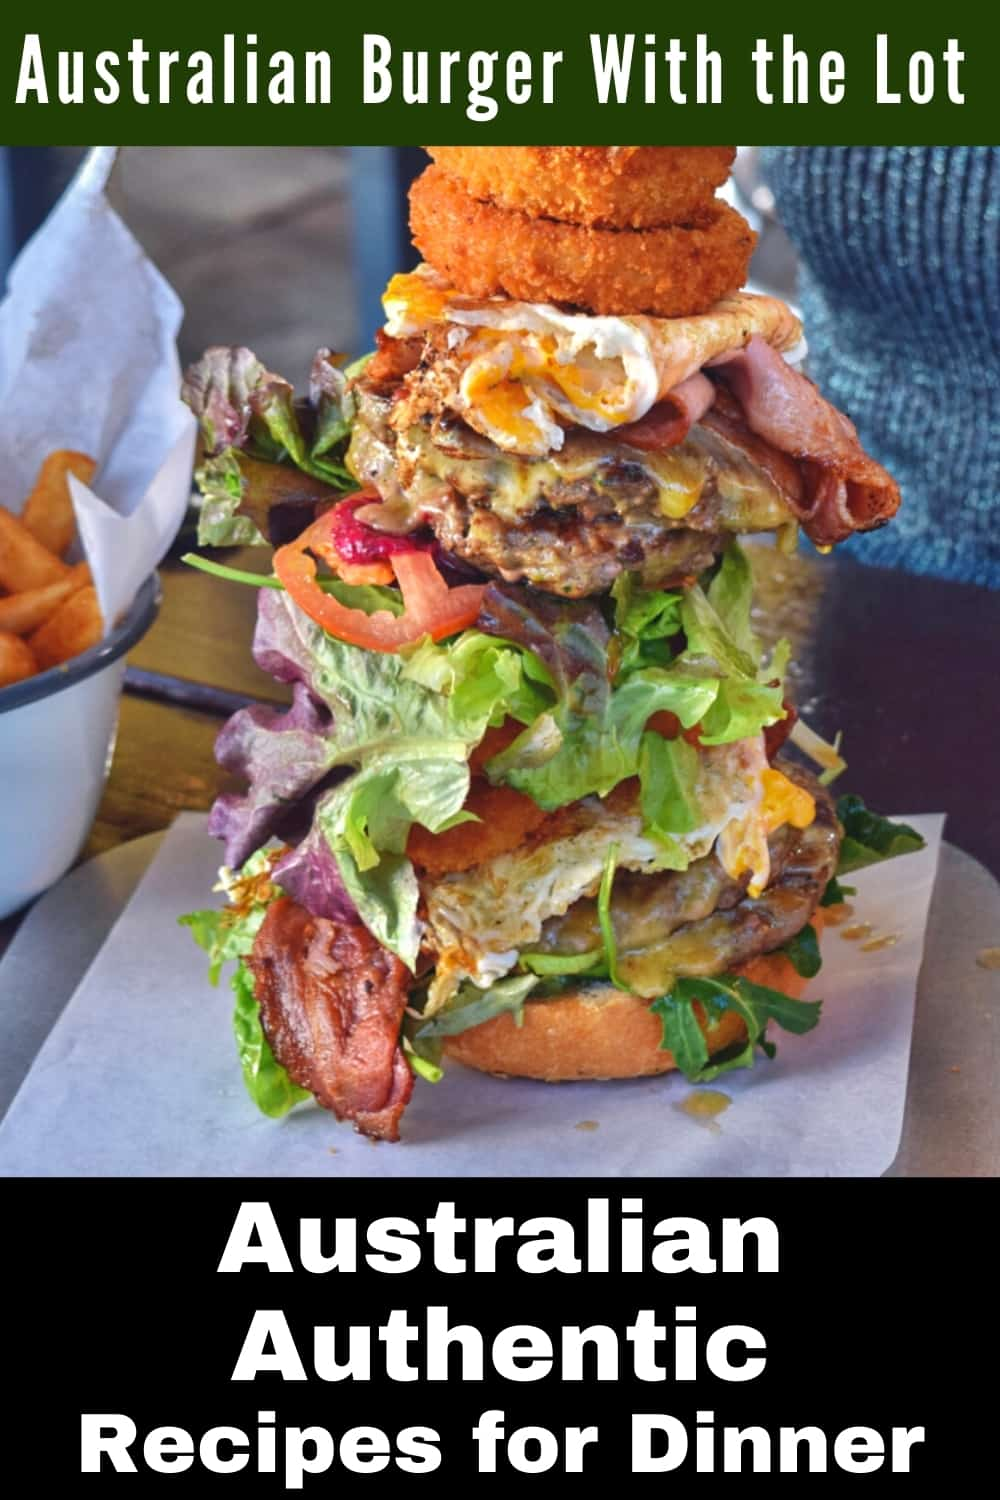 Australian Burger With the Lot